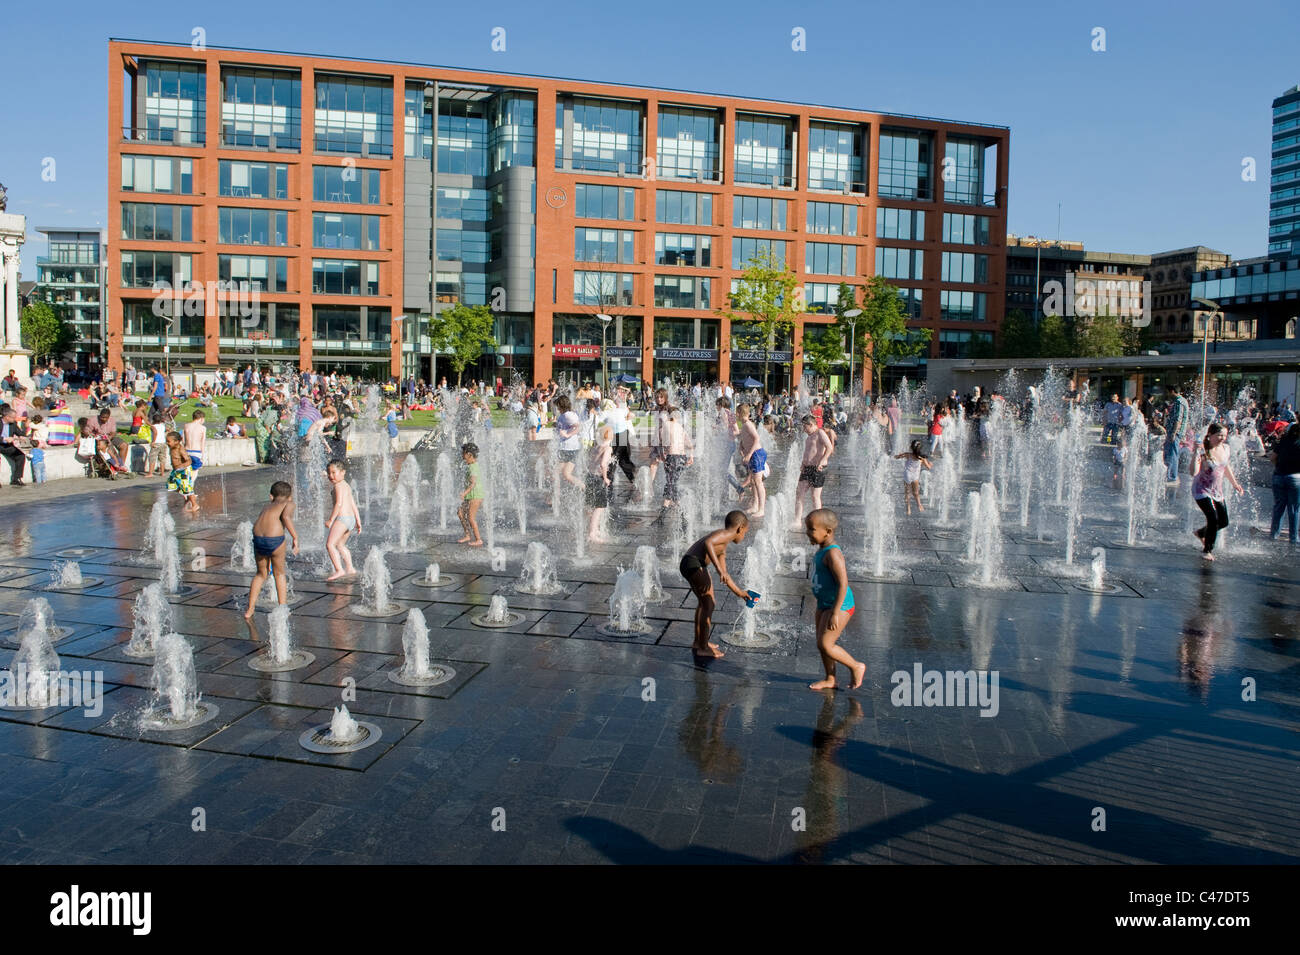 Children play in a fountain in Piccadilly Gardens, Manchester on a hot, sunny day. - Stock Image